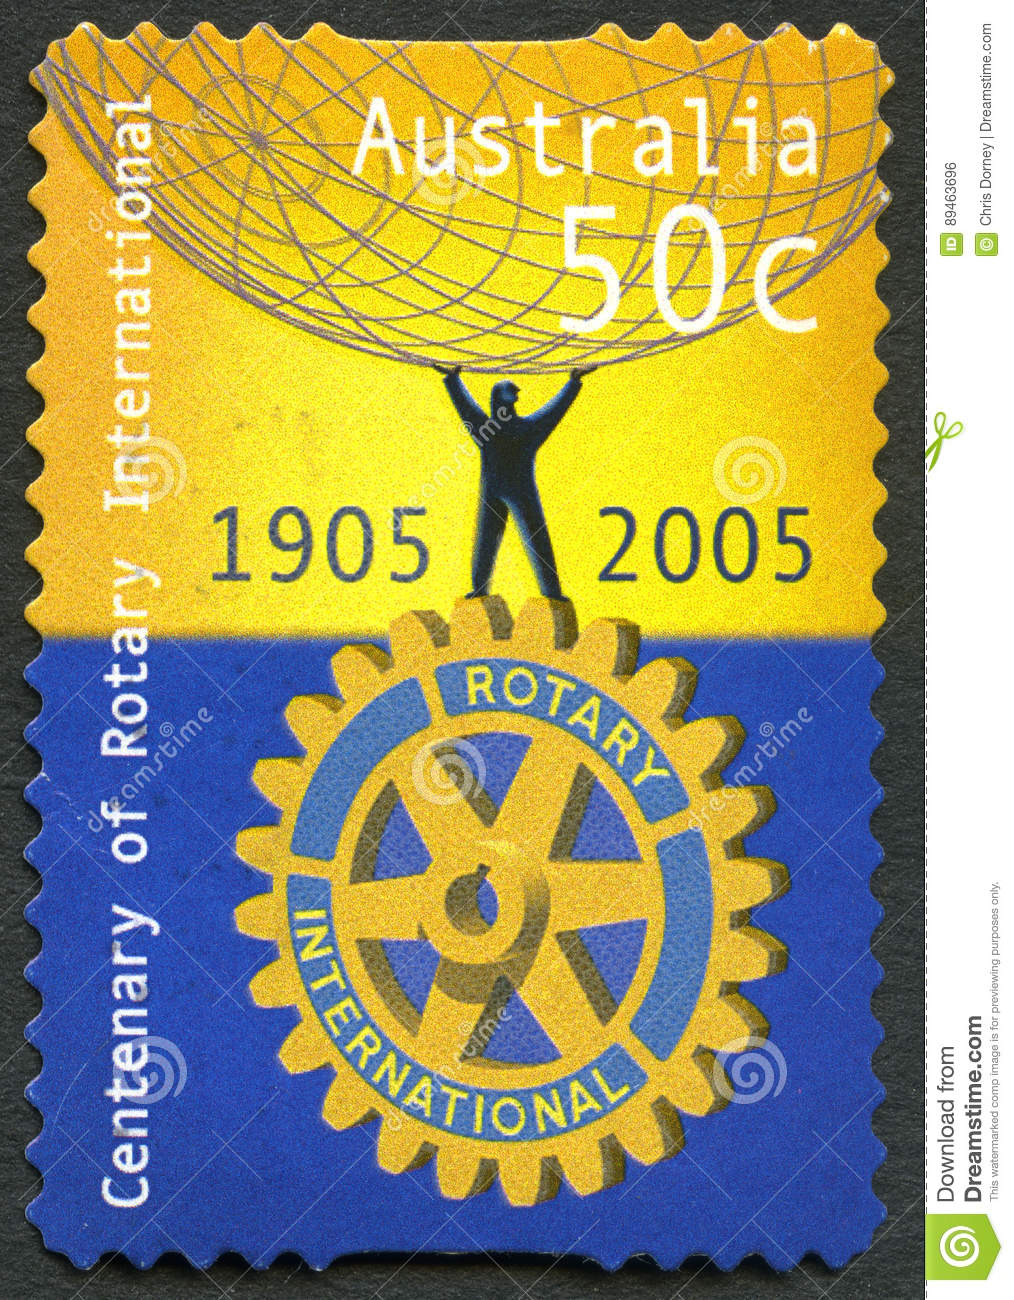 Rotary International Australian Postage Stamp